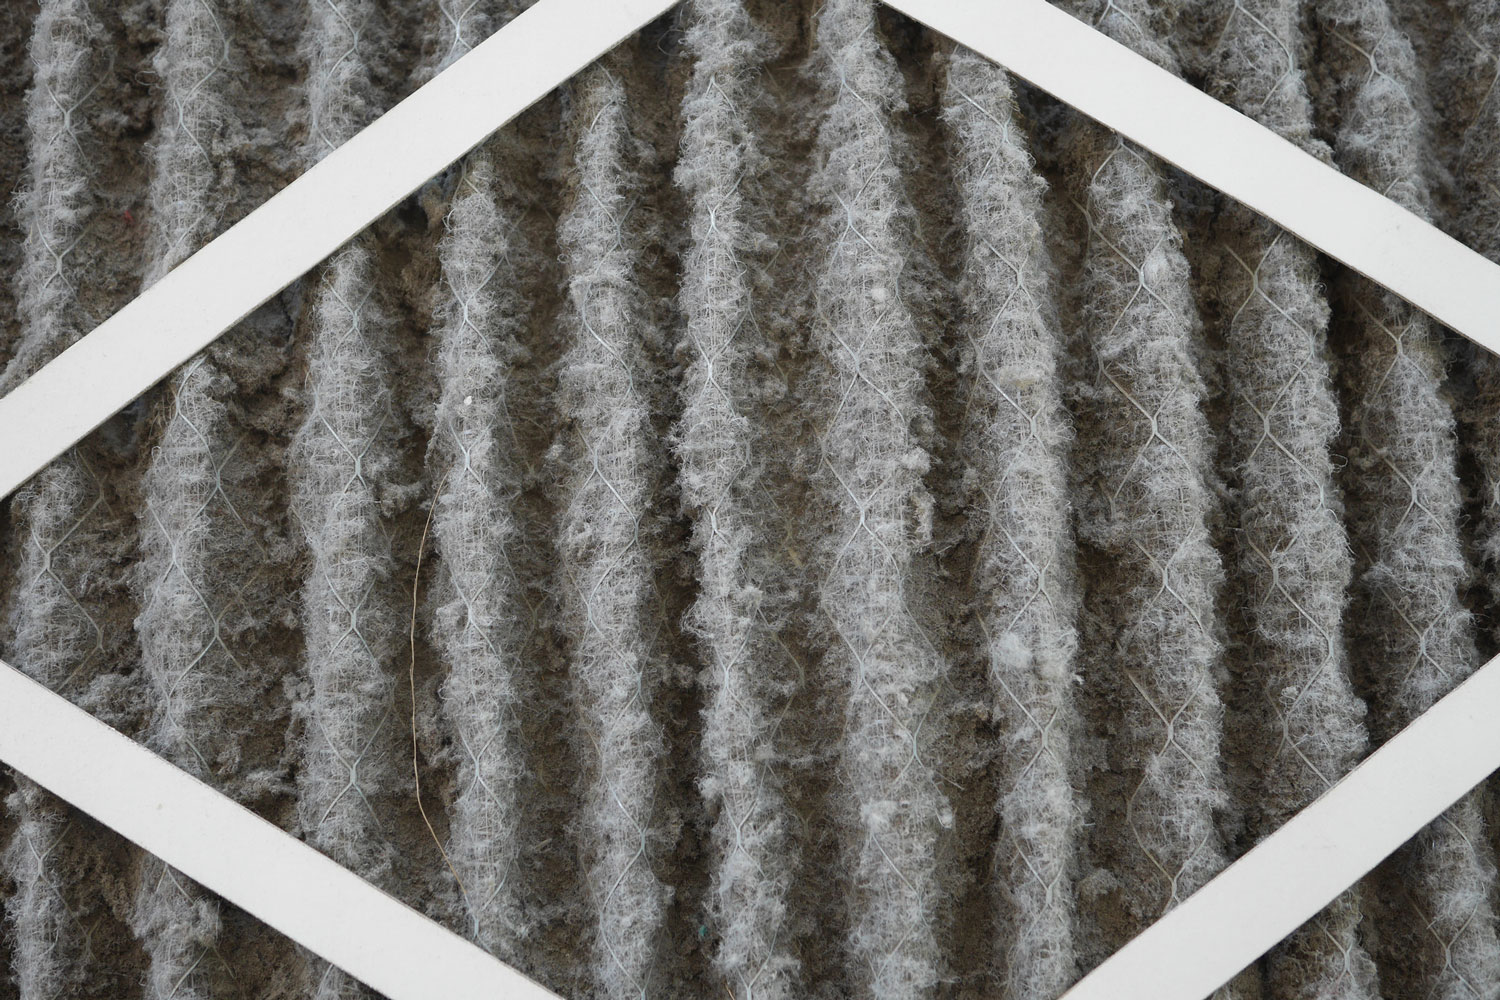 Home air filter close up macro zoom show the dirt and particle cause bacteria inflection and sickness